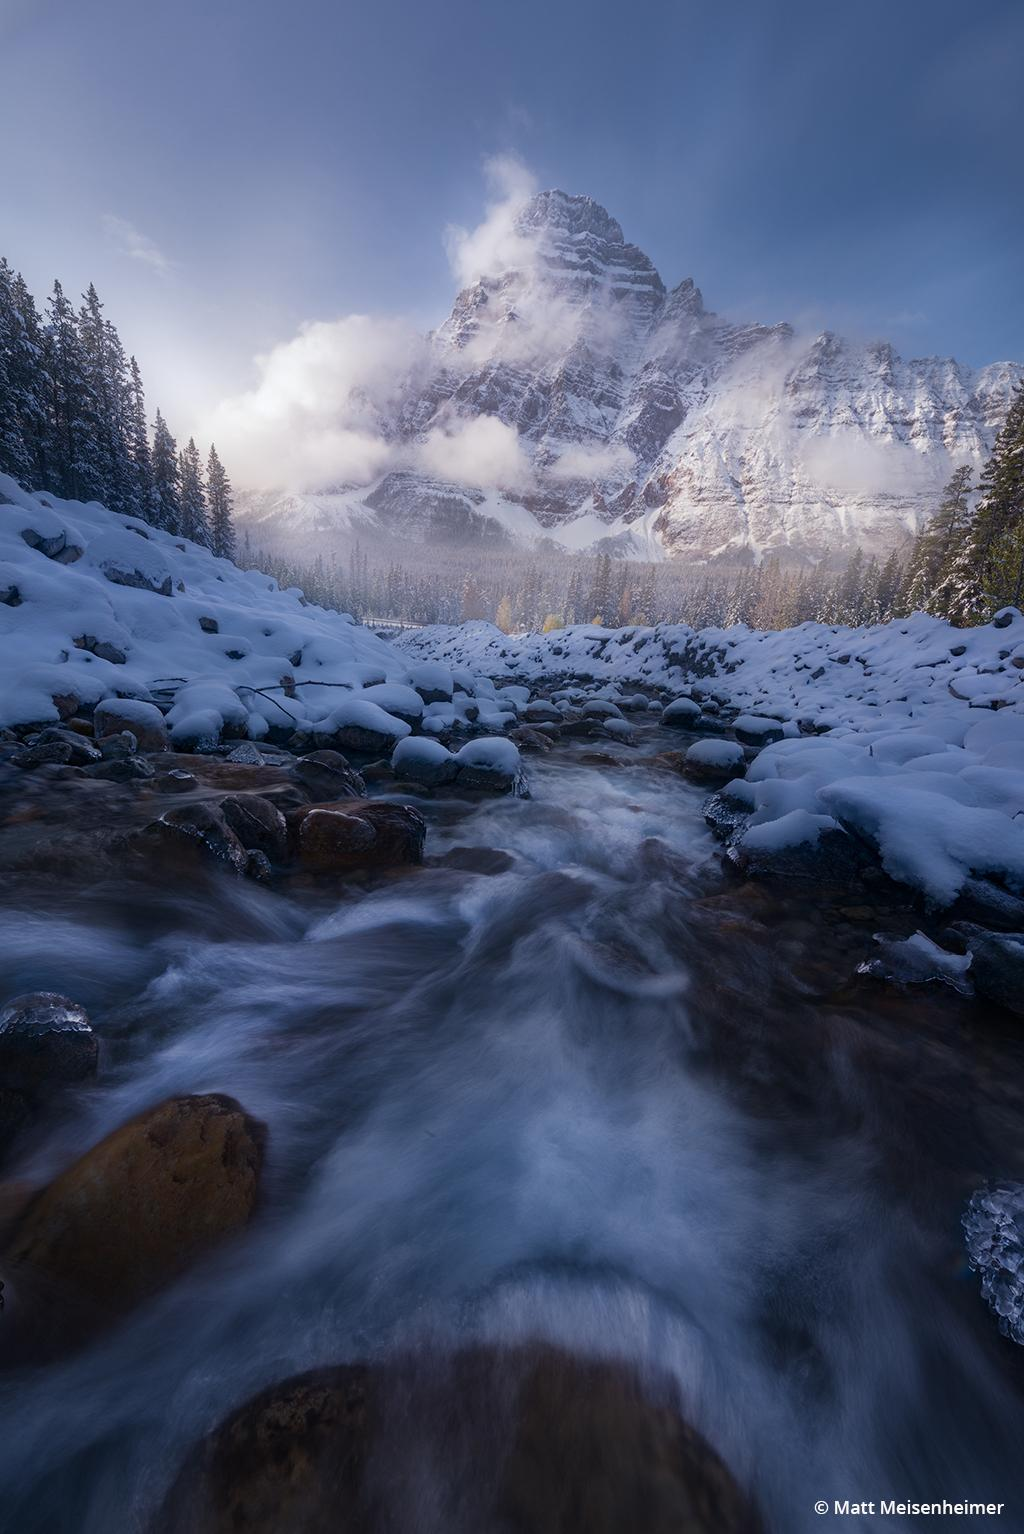 """Today's Photo Of The Day is """"Winter's Touch"""" by Matt Meisenheimer. Location: Banff National Park, Alberta, Canada."""